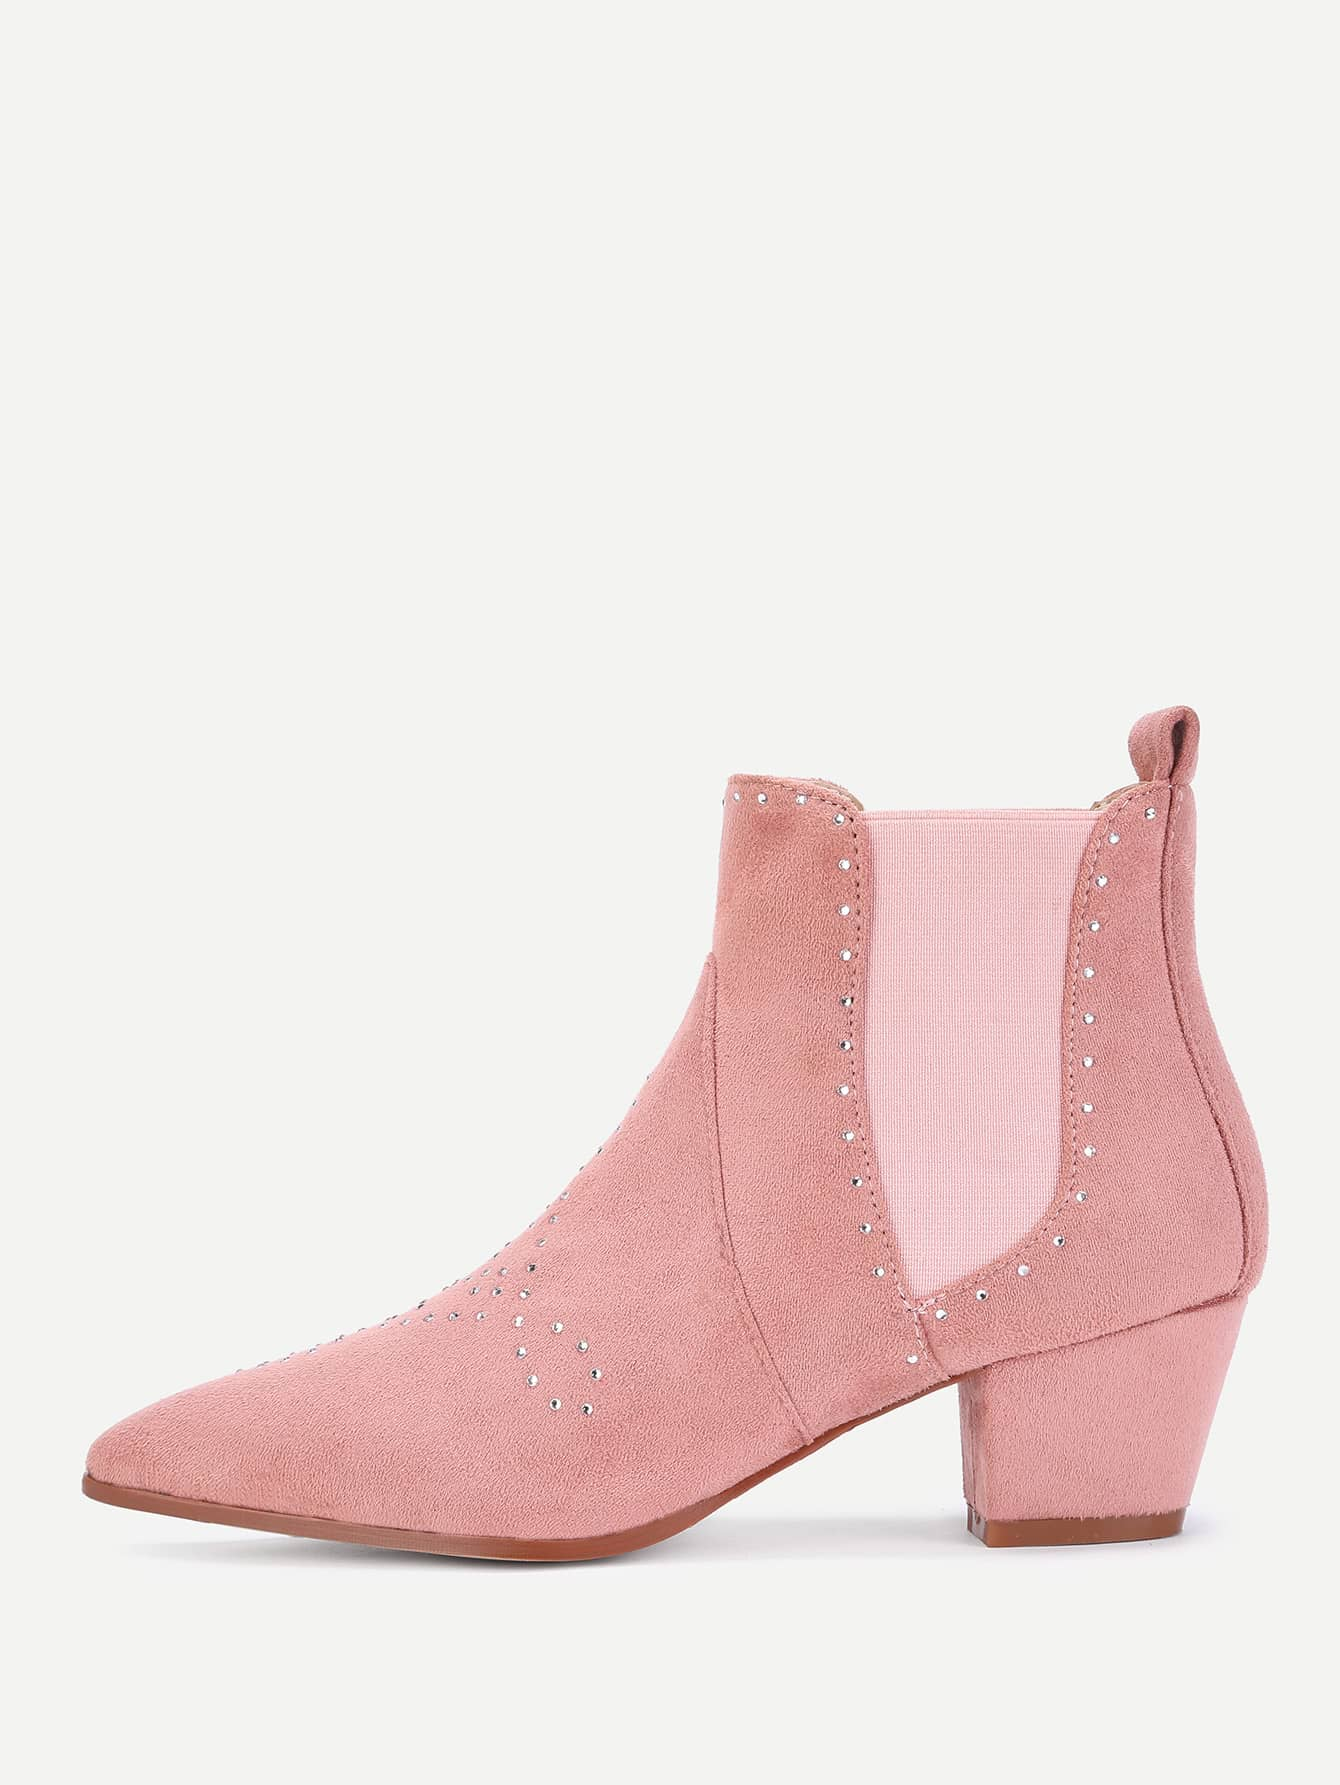 Rhinestone Detail Chelsea Boots heeled chelsea boots